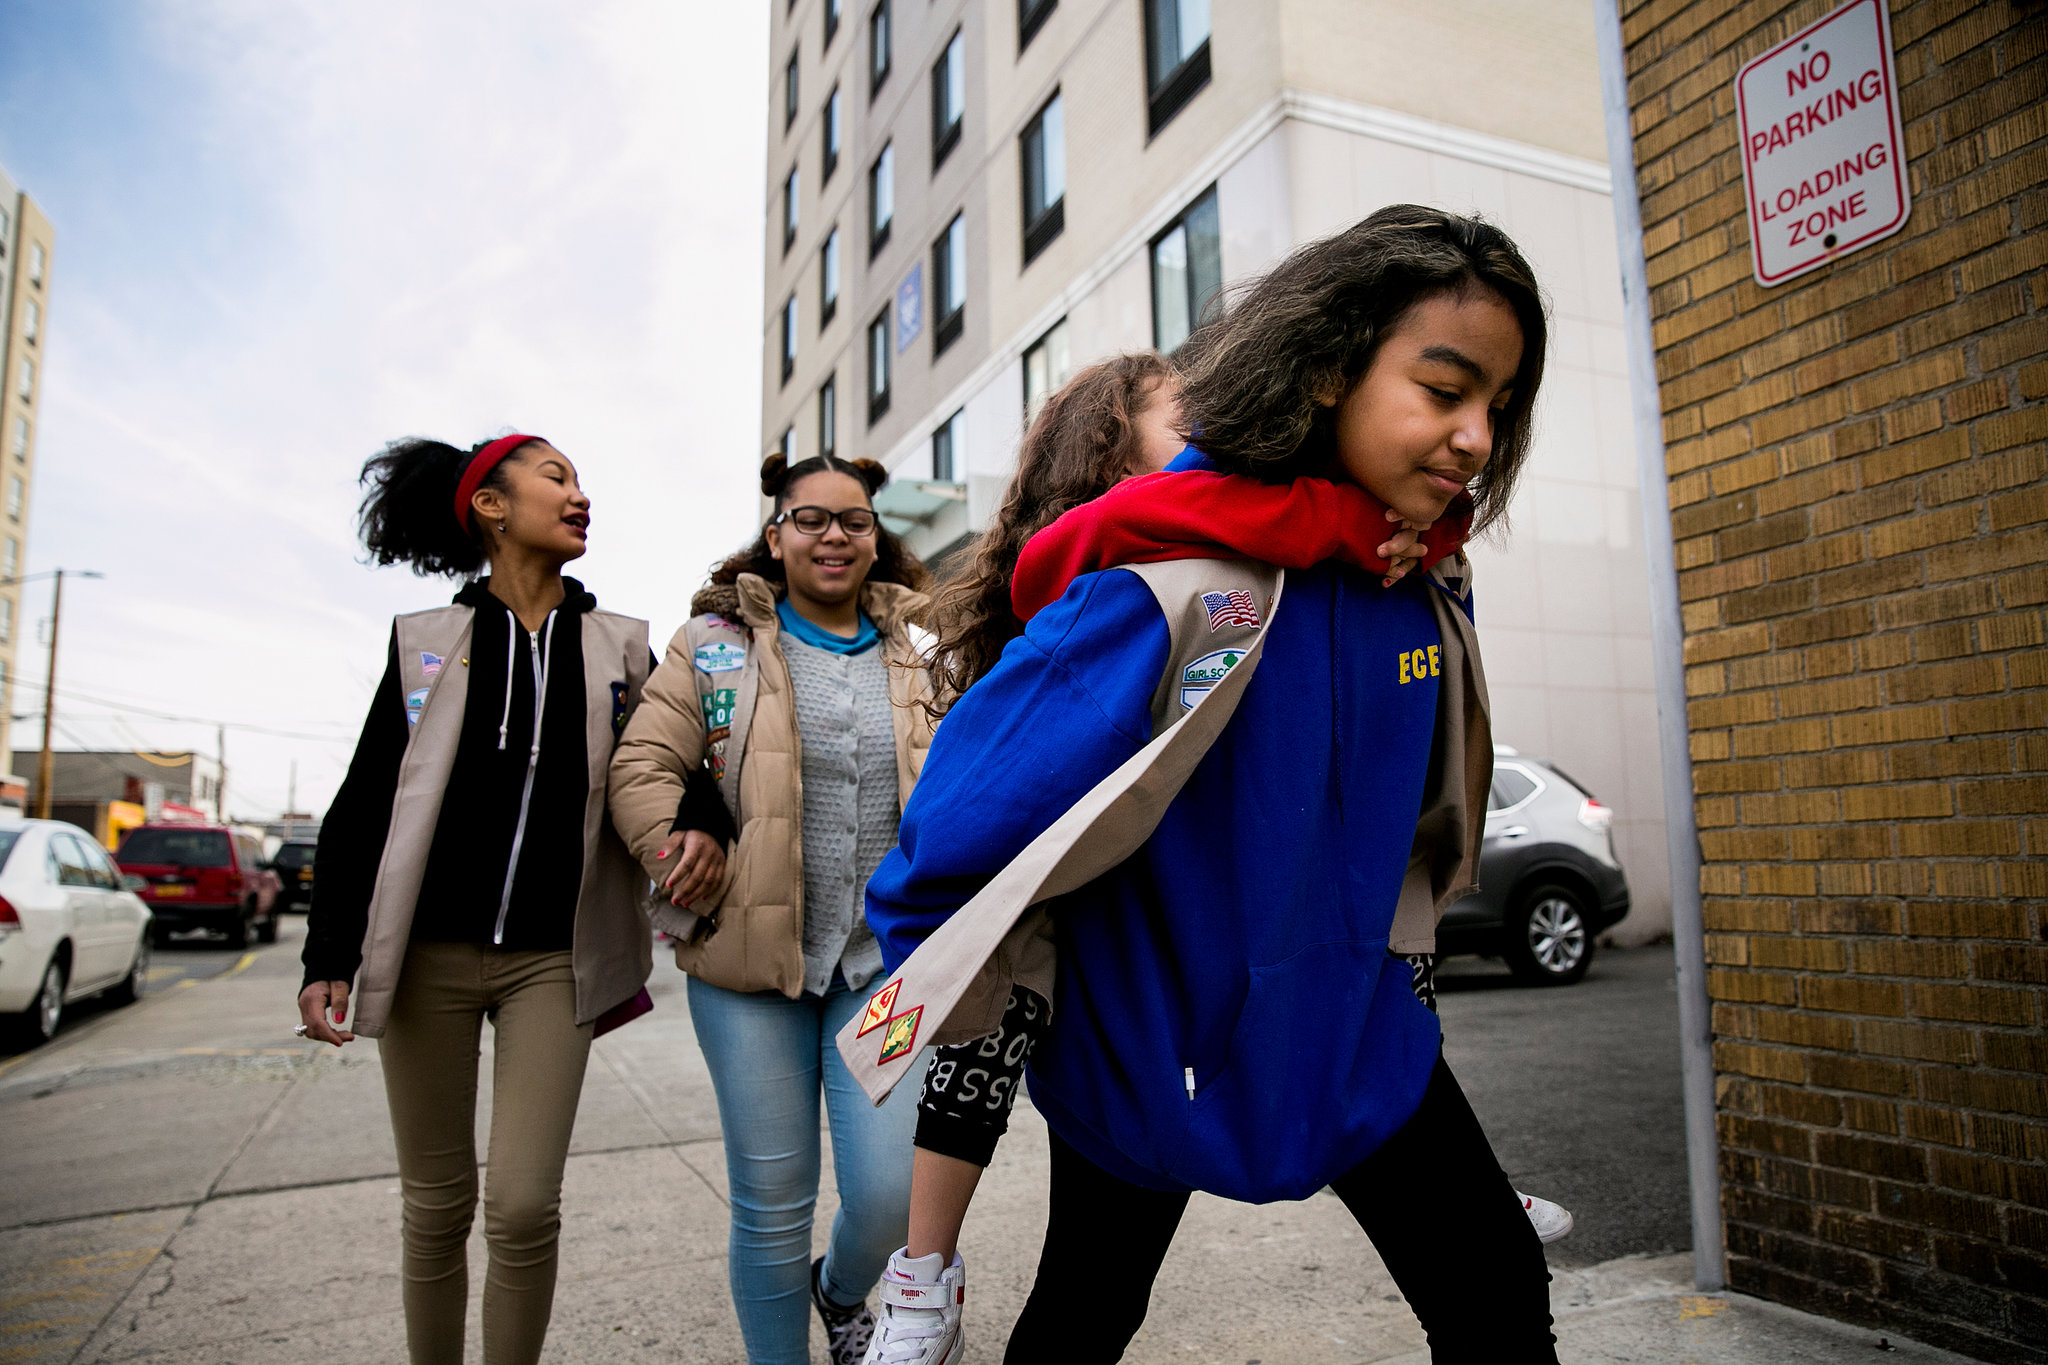 "A Girl Scout troop for homeless children that got its start at a Long Island City shelter will get  more than $1 million to expand to 14 other homeless shelter sites across the city , officials announced Wednesday.   https://www.dnainfo.com/new-york/20170712/long-island-city/homeless-girl-scout-troop-children   The Department of Homeless Services and the Mayor's Fund to Advance New York City will fund the grant —  $375,000 a year over the next three years  — to expand Girl Scout Troop 6000, which was formed in March to serve girls living in a shelter based at the Sleep Inn Hotel in Queens.  Though the exact locations haven't been determined yet,  the funding will allow the troop to expand to 14 other city shelters starting this October, serving an additional 500 girls and women in its first year.   The troop will meet weekly at the designated shelter sites and will be run by trained troop leaders who also live in the shelter system, according to an announcement from DHS.  The city funding will be used to cover membership fees and dues, as well as the children's uniforms, pins, workbooks and other necessities, officials said.  ""I have fond memories of the lessons and teachings that the Girl Scouts provided me as a young child,"" Herminia Palacio, the city's deputy mayor for Health and Human Services, said in a statement. ""With this new grant, we will be able to reach even more young people and help them cope with the everyday challenges homelessness brings.""   About a third of the city's shelter residents are kids under the age of 17 , officials said.  Girl Scout Troop 6000 was formed in March through a partnership between DHS and the Girl Scouts of Greater New York, and it currently counts at least two-dozen members, a DHS spokeswoman said.   The troop, which marks the first in the nation to specifically serve homeless girls , was launched after City Councilman Jimmy Van Bramer visited the hotel-based women's shelter in his Long Island City district for Thanksgiving dinner in November.  ""It was there that we dreamed of a Girl Scout troop created specifically for homeless girls,"" he said in a statement. ""This money will help these girls realize their dreams.  Helping to expand Troop 6000 is just about the most right thing I've ever been a part of ."""